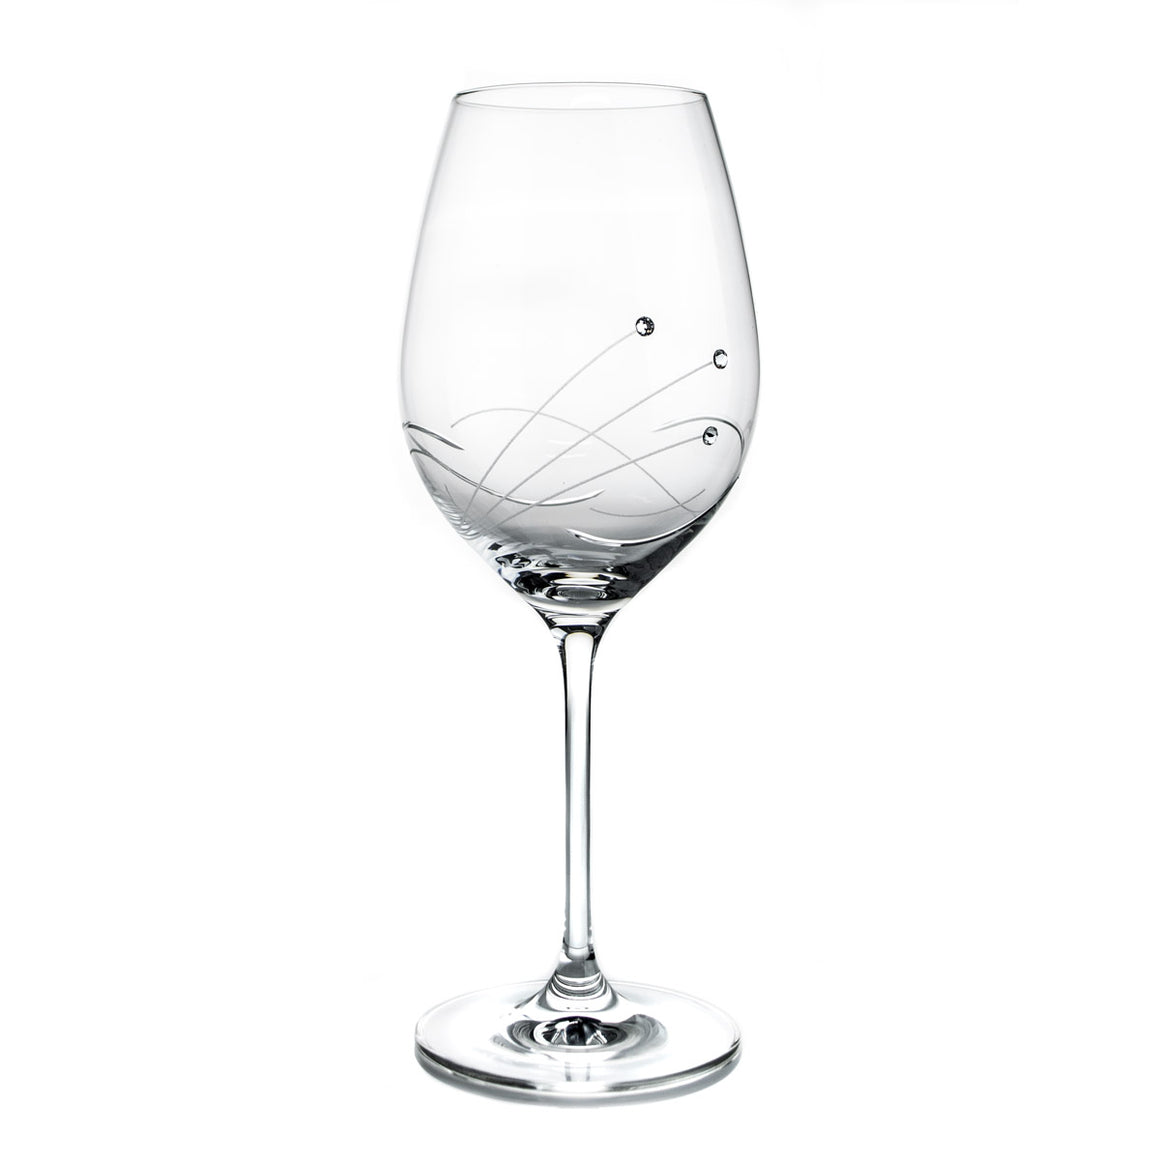 Kate Swarovski Crystals Wine Glasses, Pair - The Crystal Wonderland